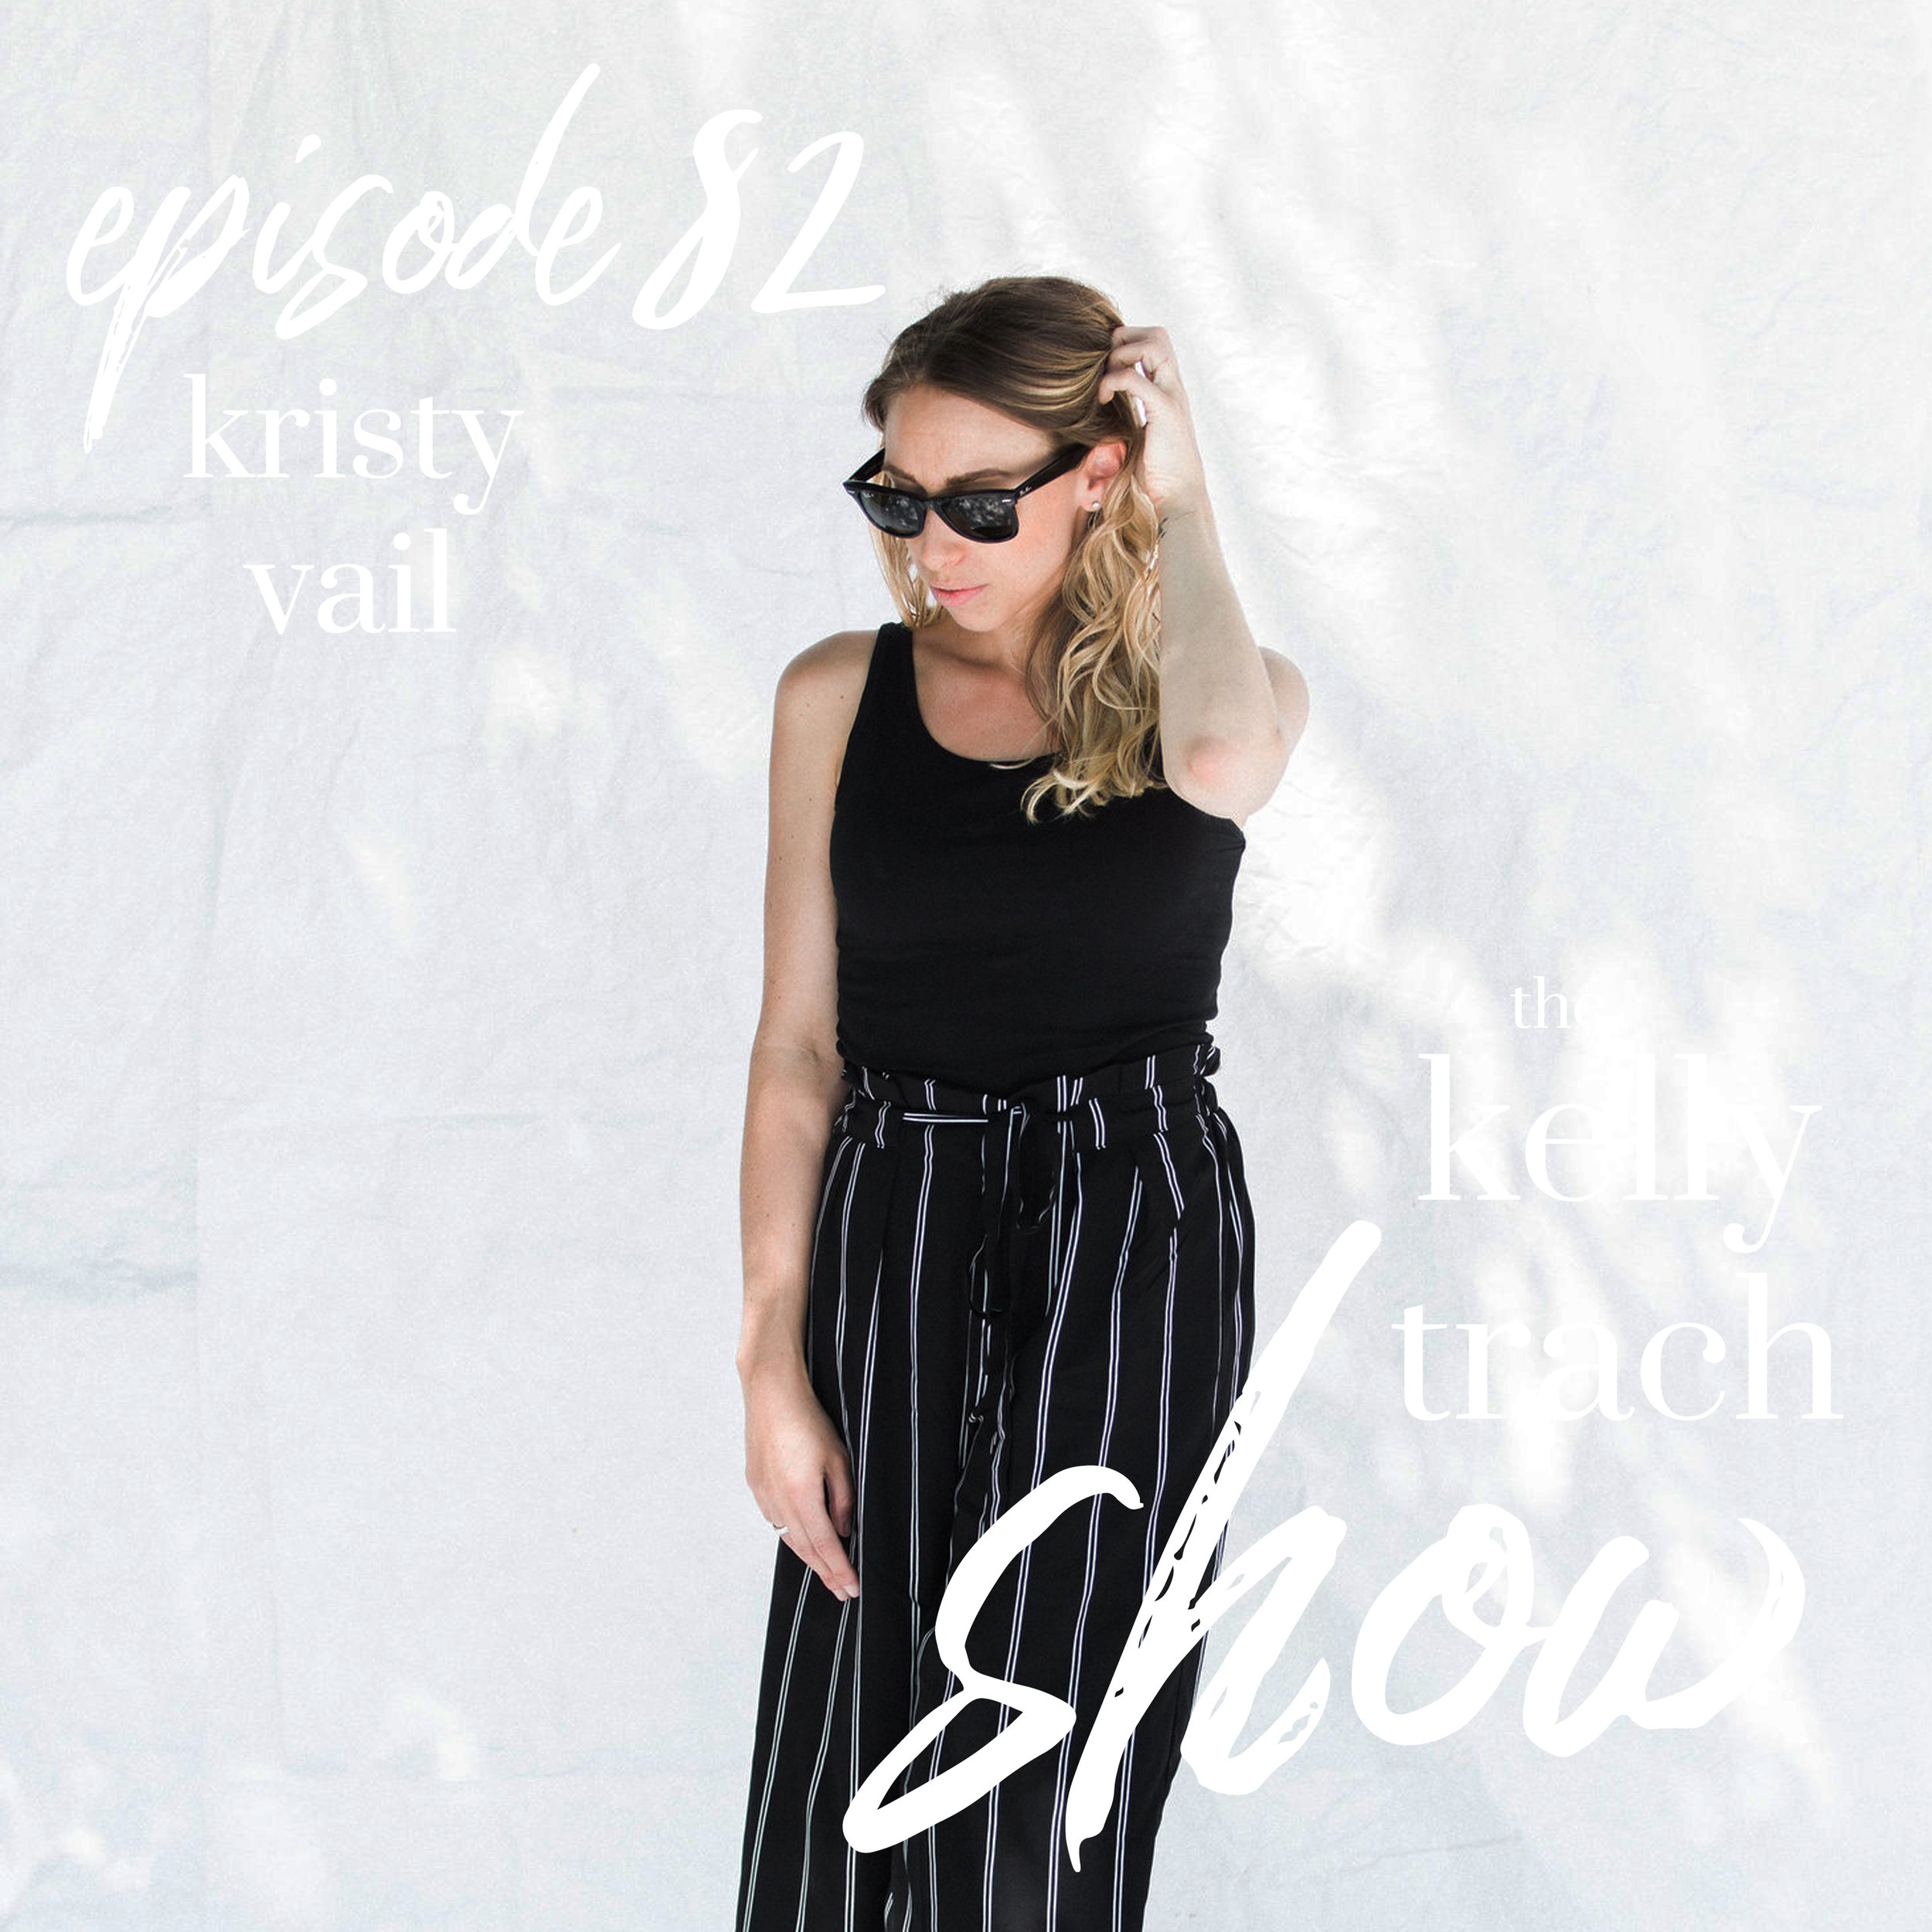 82 - KT Q&A with Kristy Vail - The Kelly Trach Show Podcast.jpg